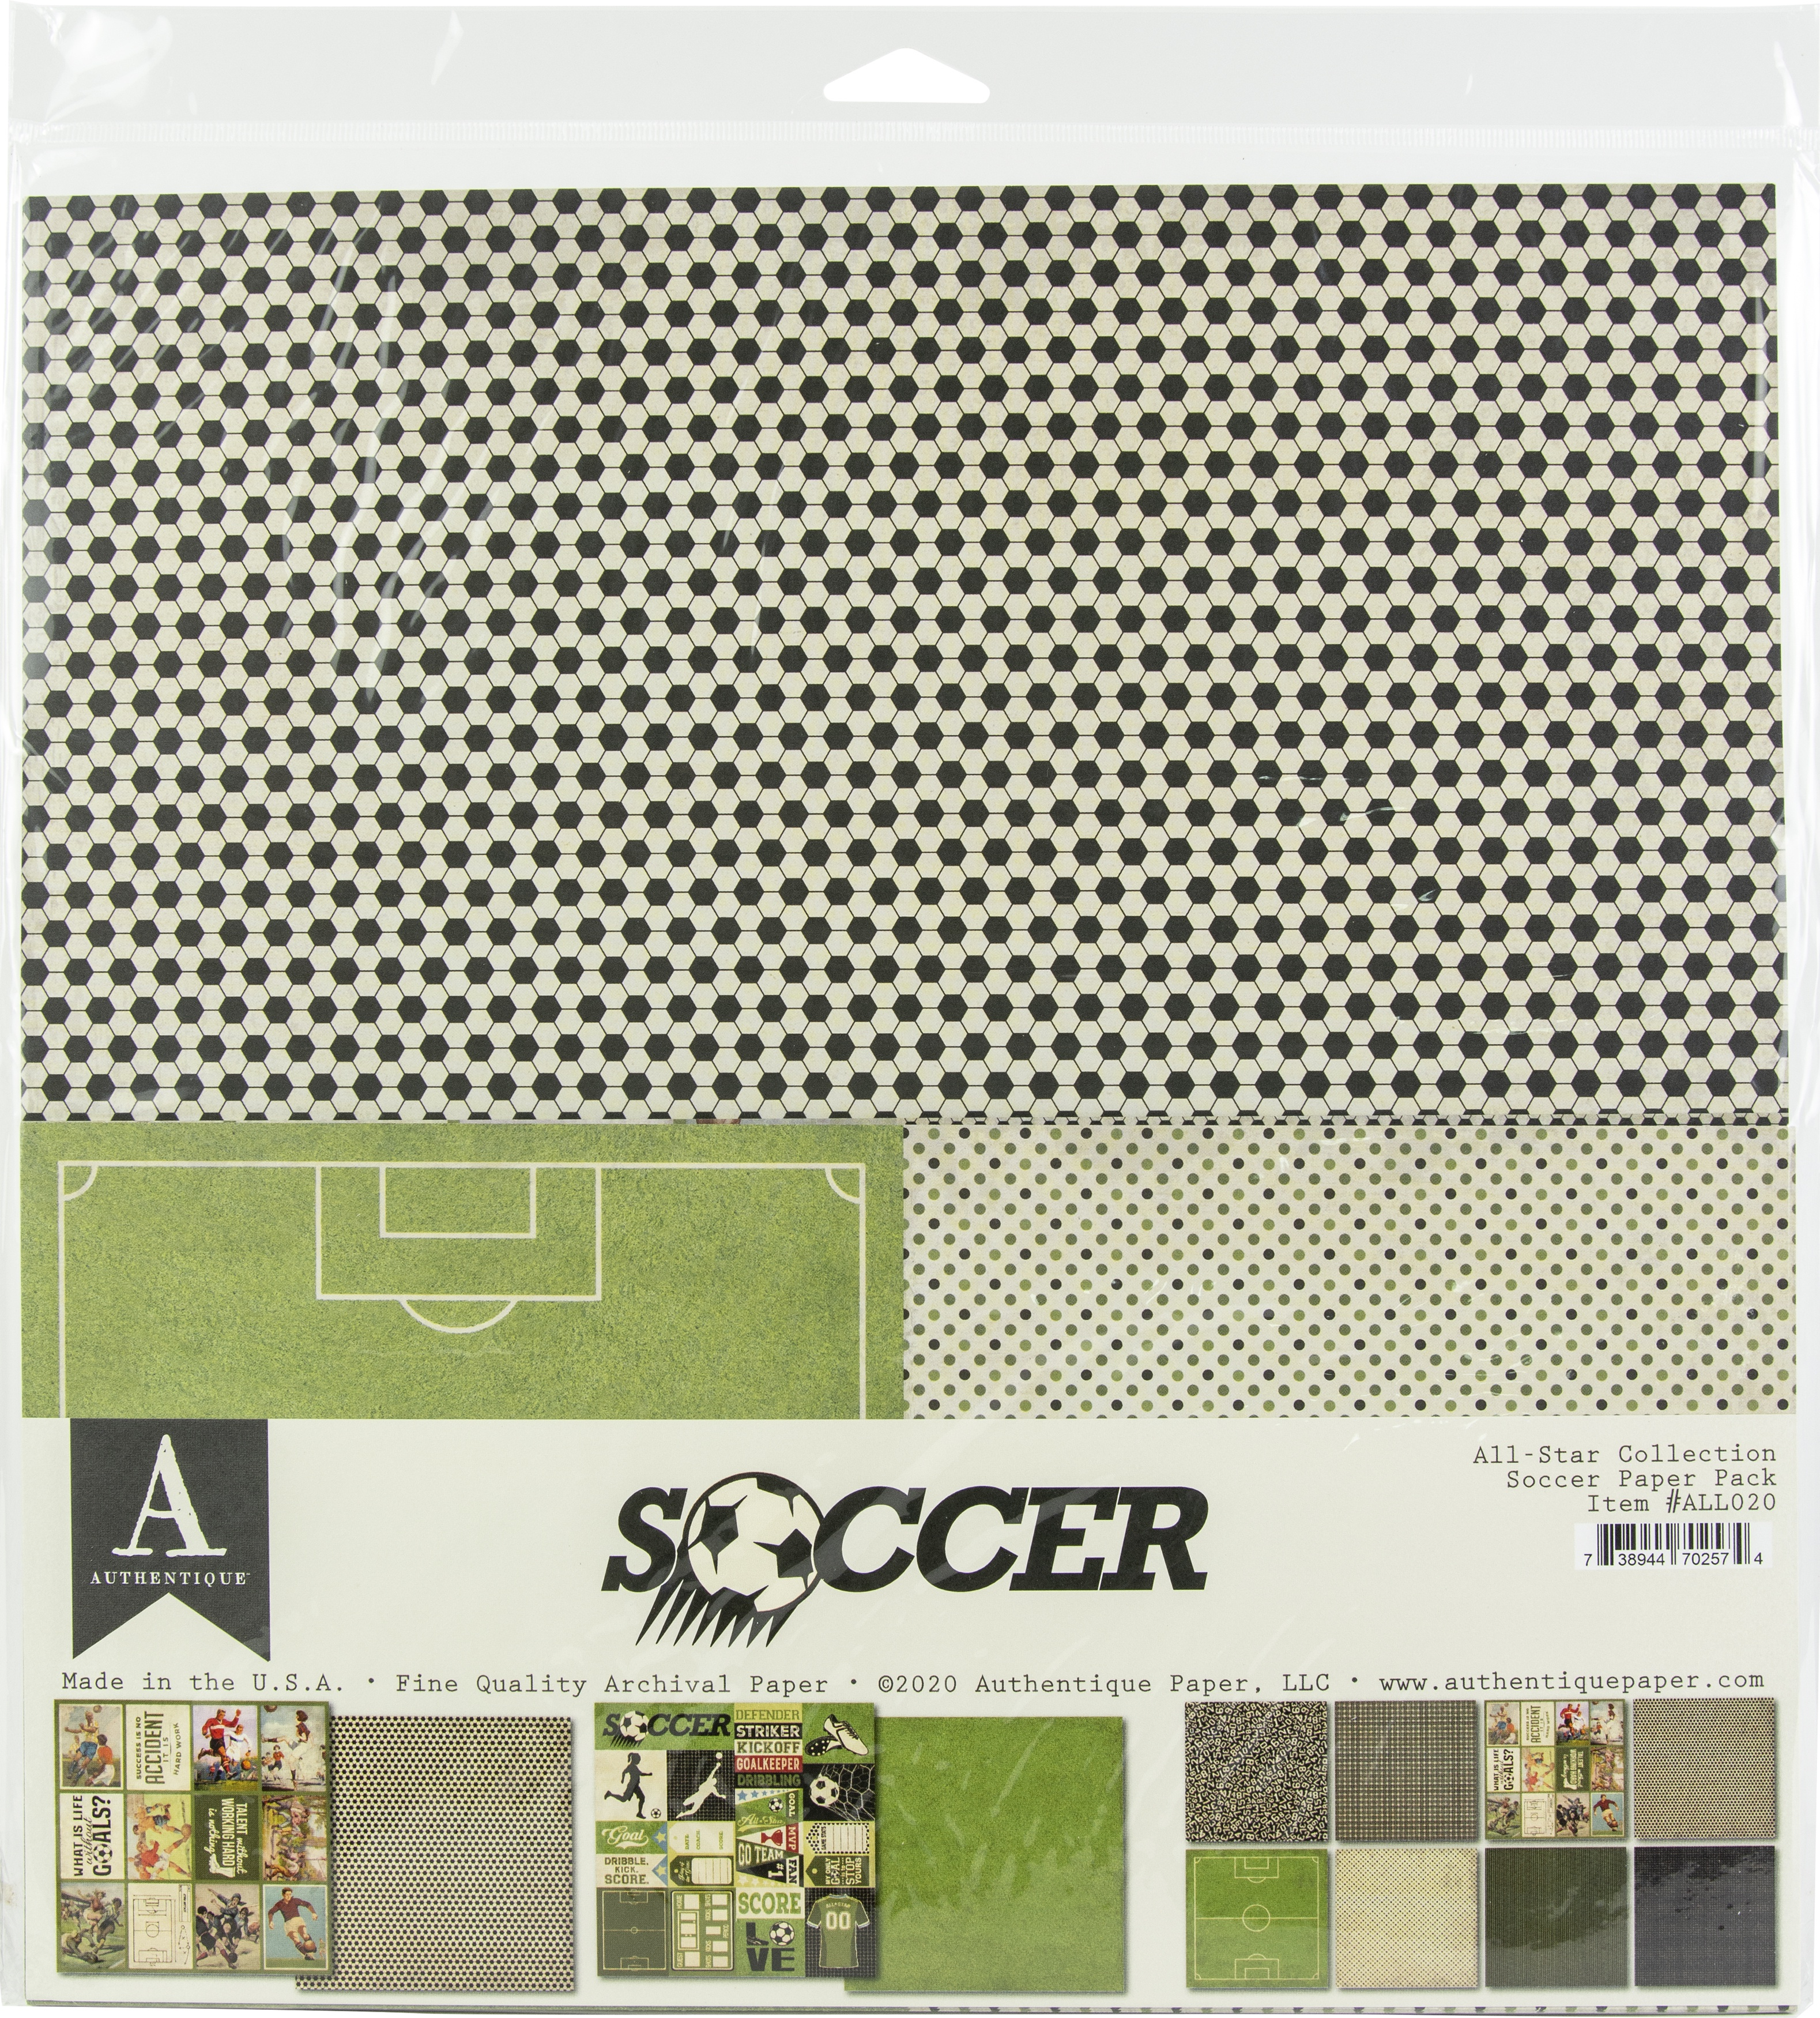 All-Star Collection Soccer